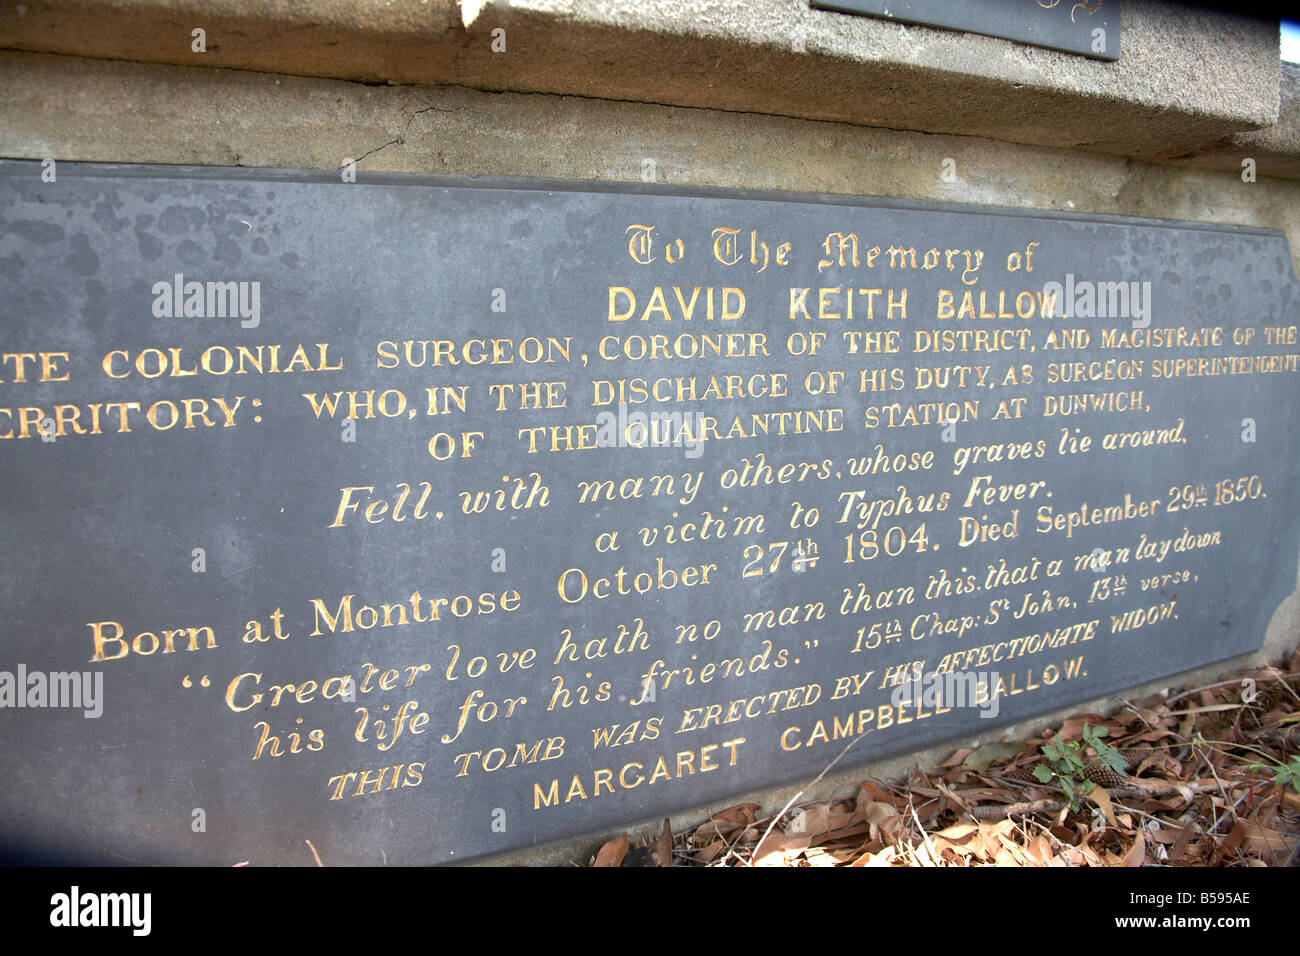 Cemetry graveyard with memorial plaque to Colonial Surgeon David Ballow at Dunwich on Stradbroke Island Queensland - Stock Image